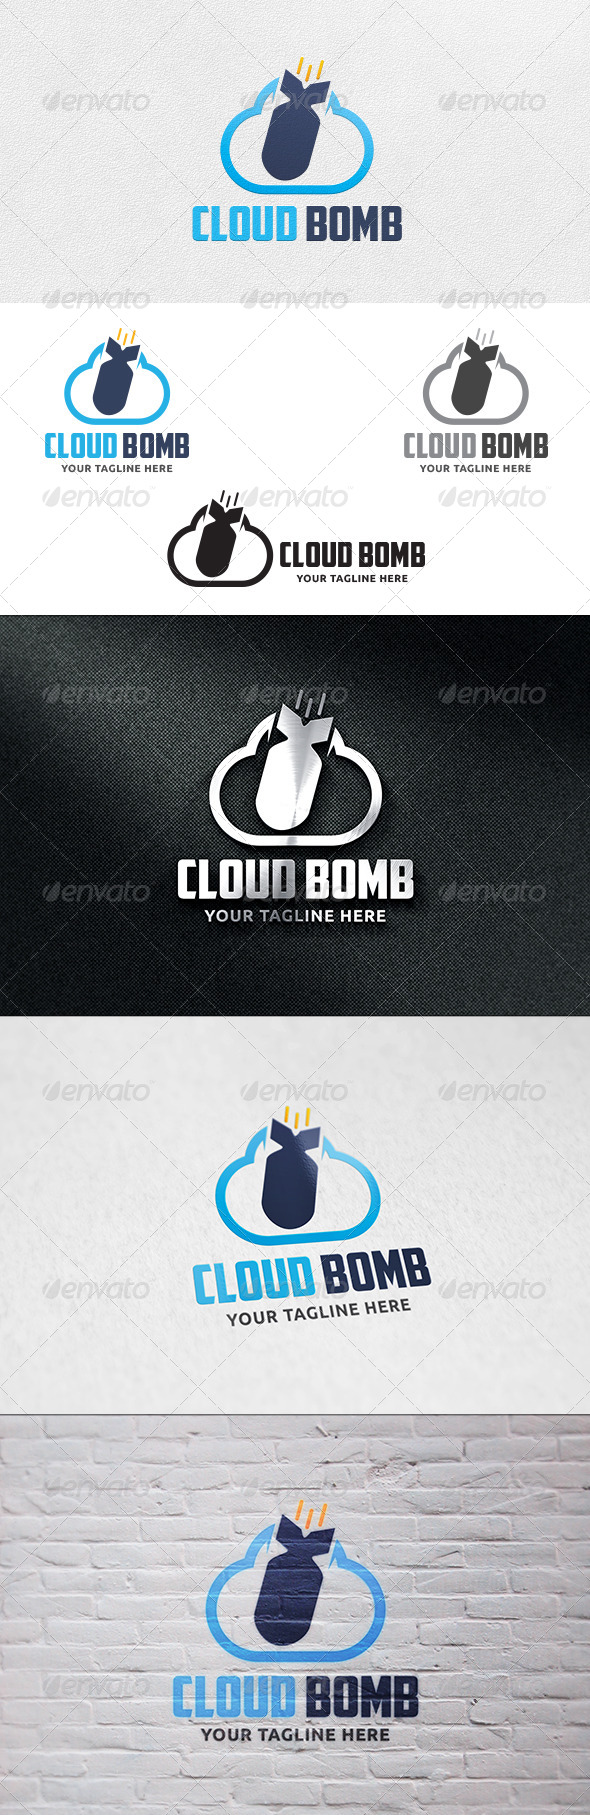 Cloud Bomb - Logo Template - Objects Logo Templates